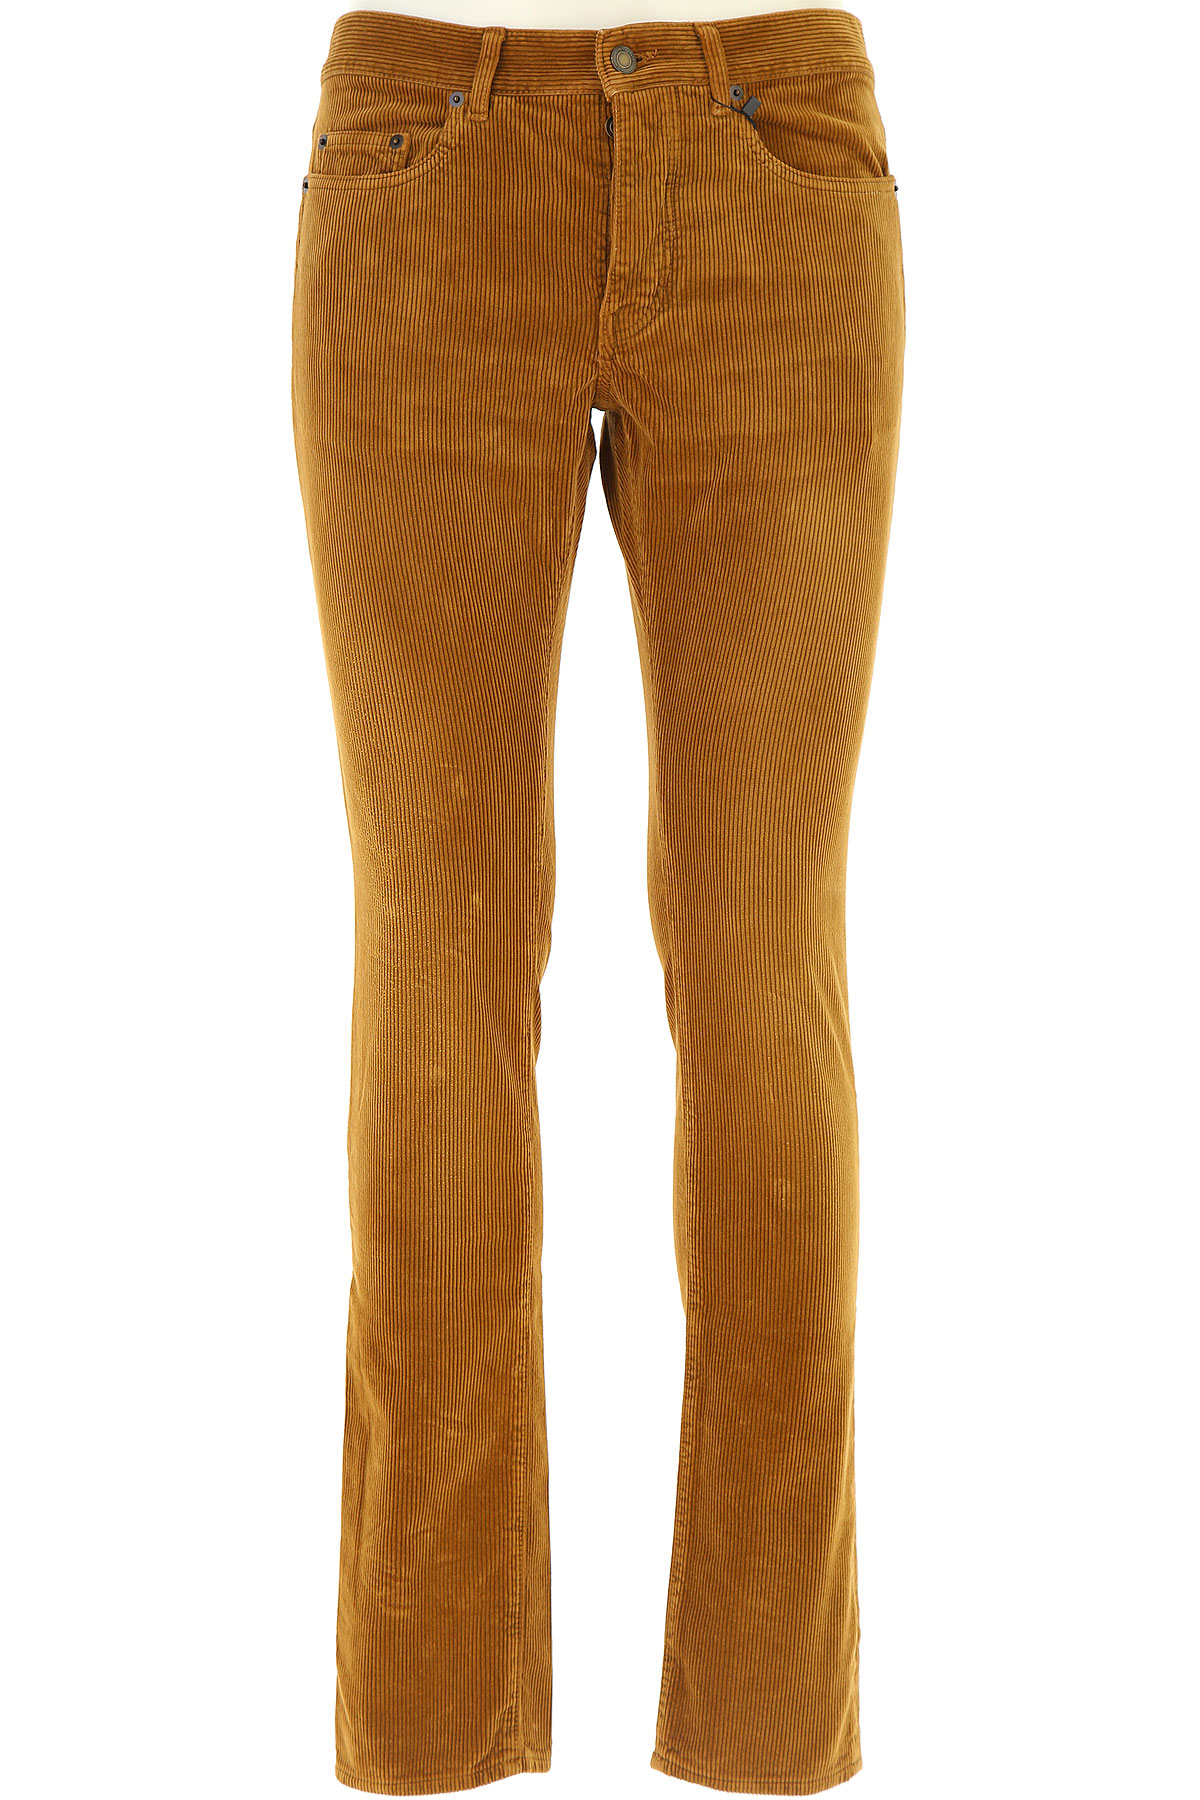 Yves Saint Laurent Pants for Men On Sale, Brown, Cotton, 2017, 30 31 32 33 36